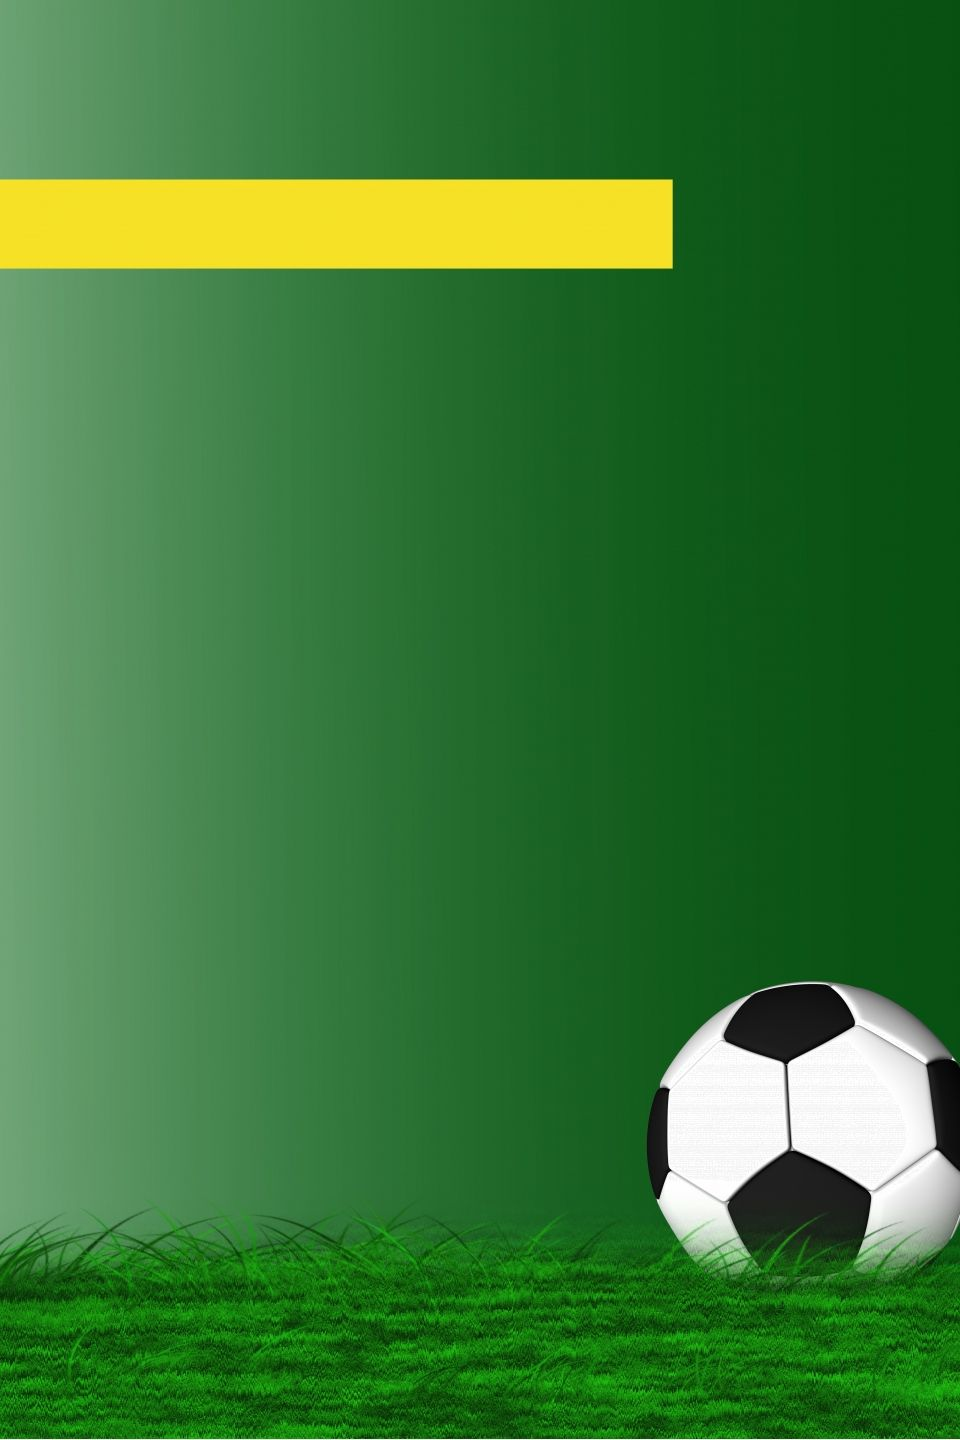 Football Advertising Poster Background On Green Lawn Football Poster Soccer Poster Football Background